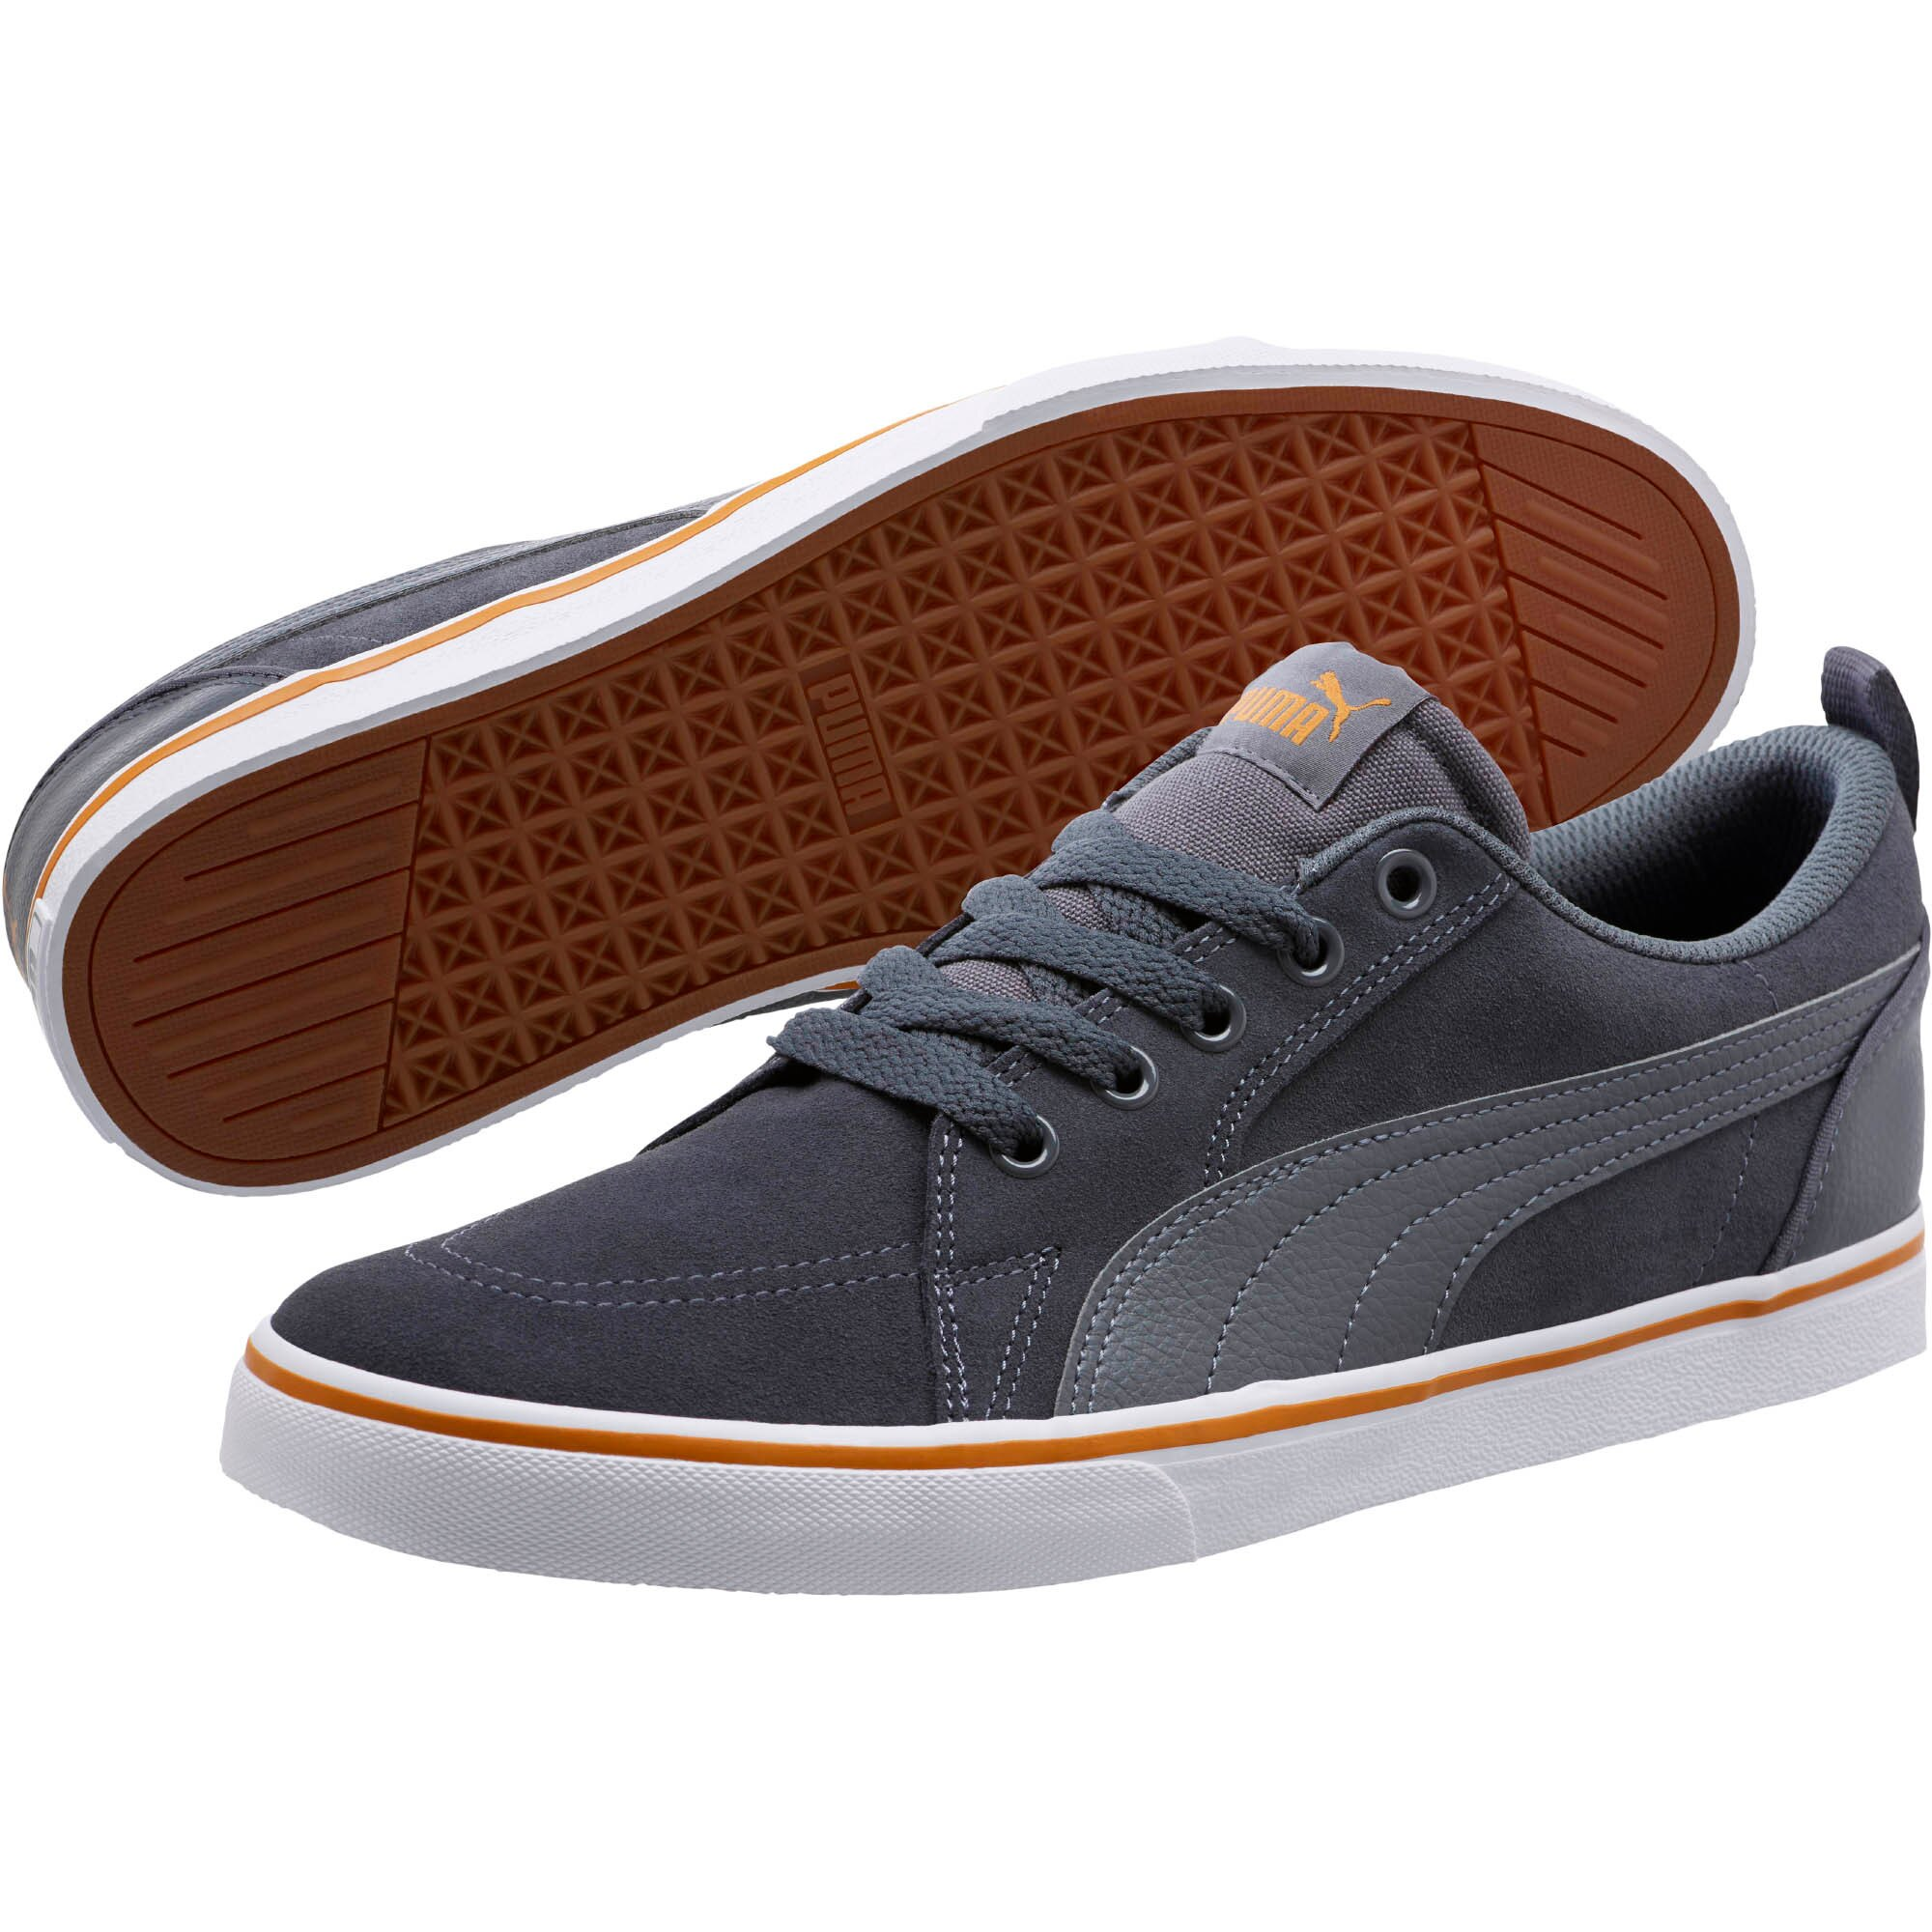 Official Puma Store  Puma Bridger SD Men s Sneakers  01e0f4c4a